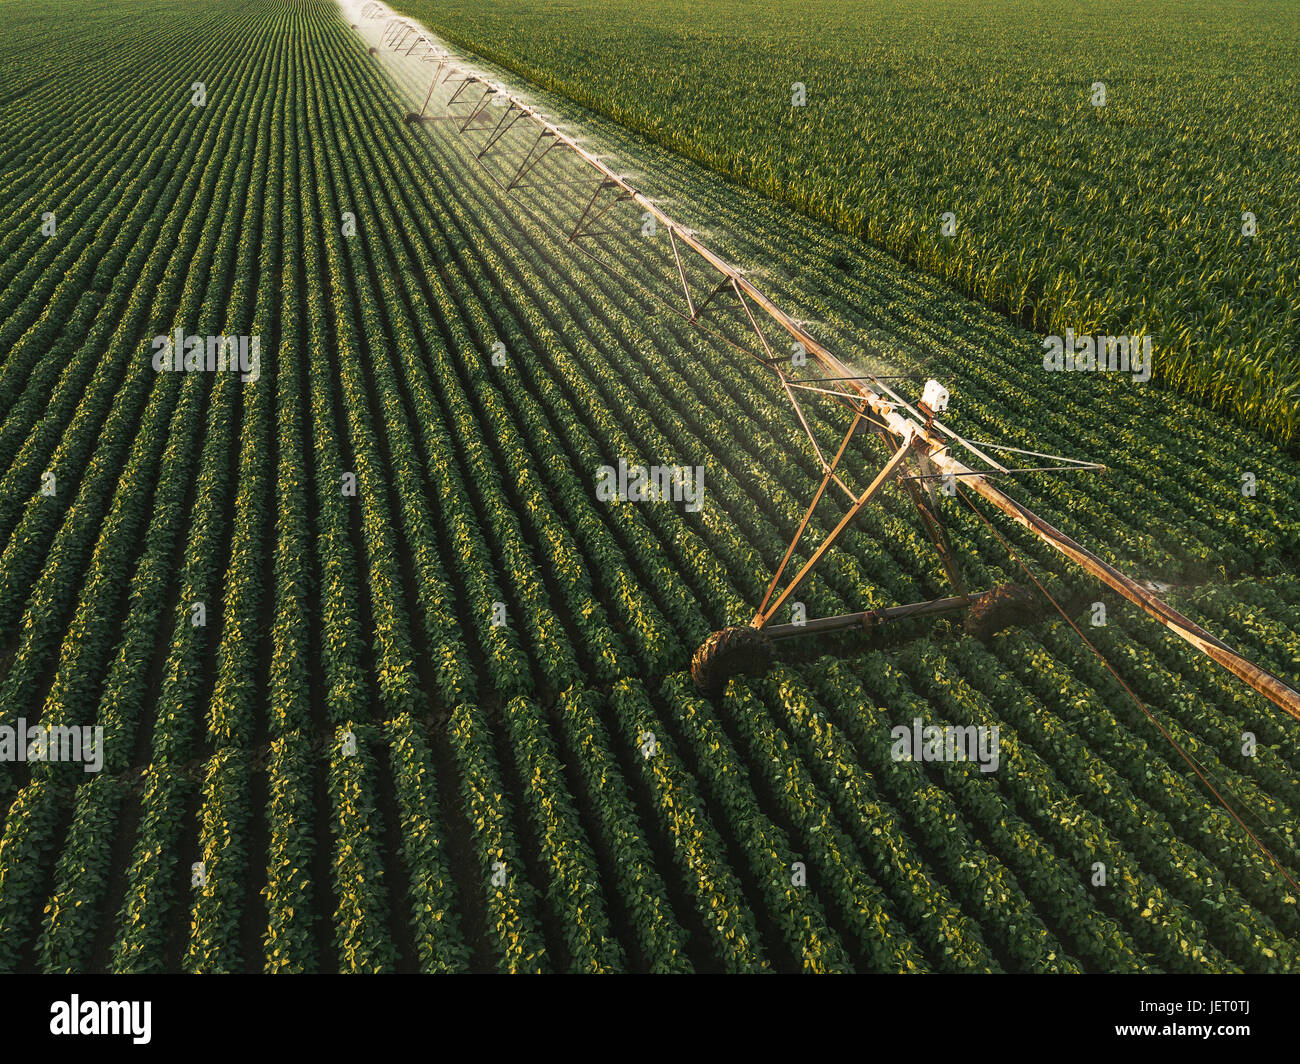 Aerial view of irrigation equipment watering green soybean crops field in summer afternoon, drone point of view - Stock Image